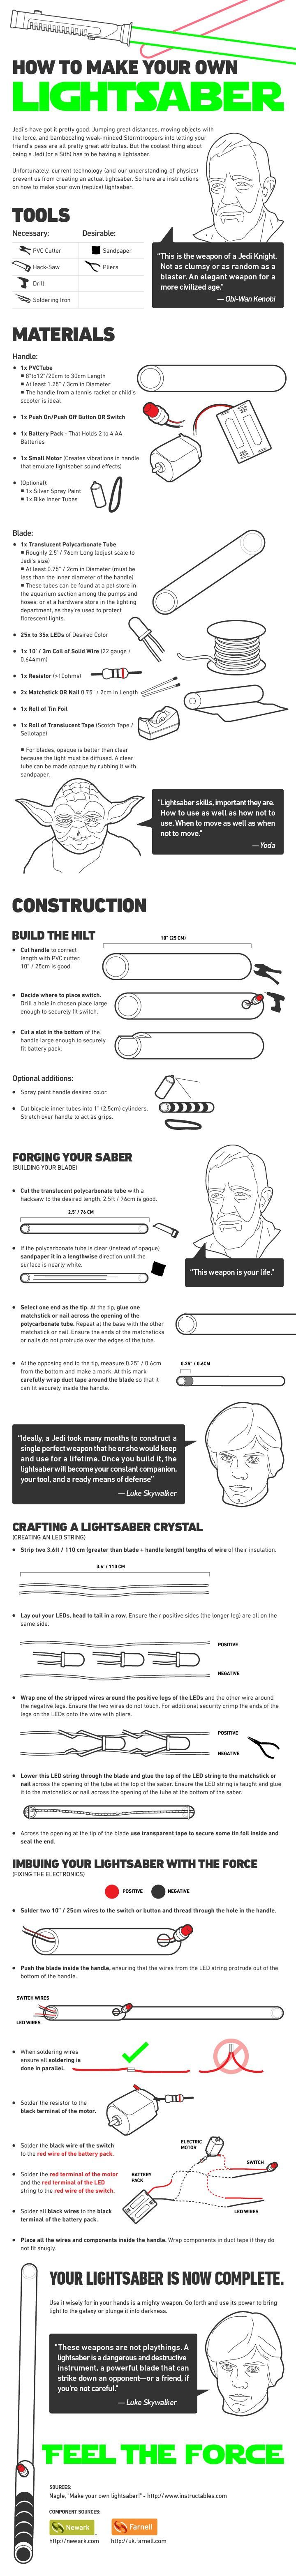 Infographic EN - How.to.Make.Your.Own.Lightsaber - Copy